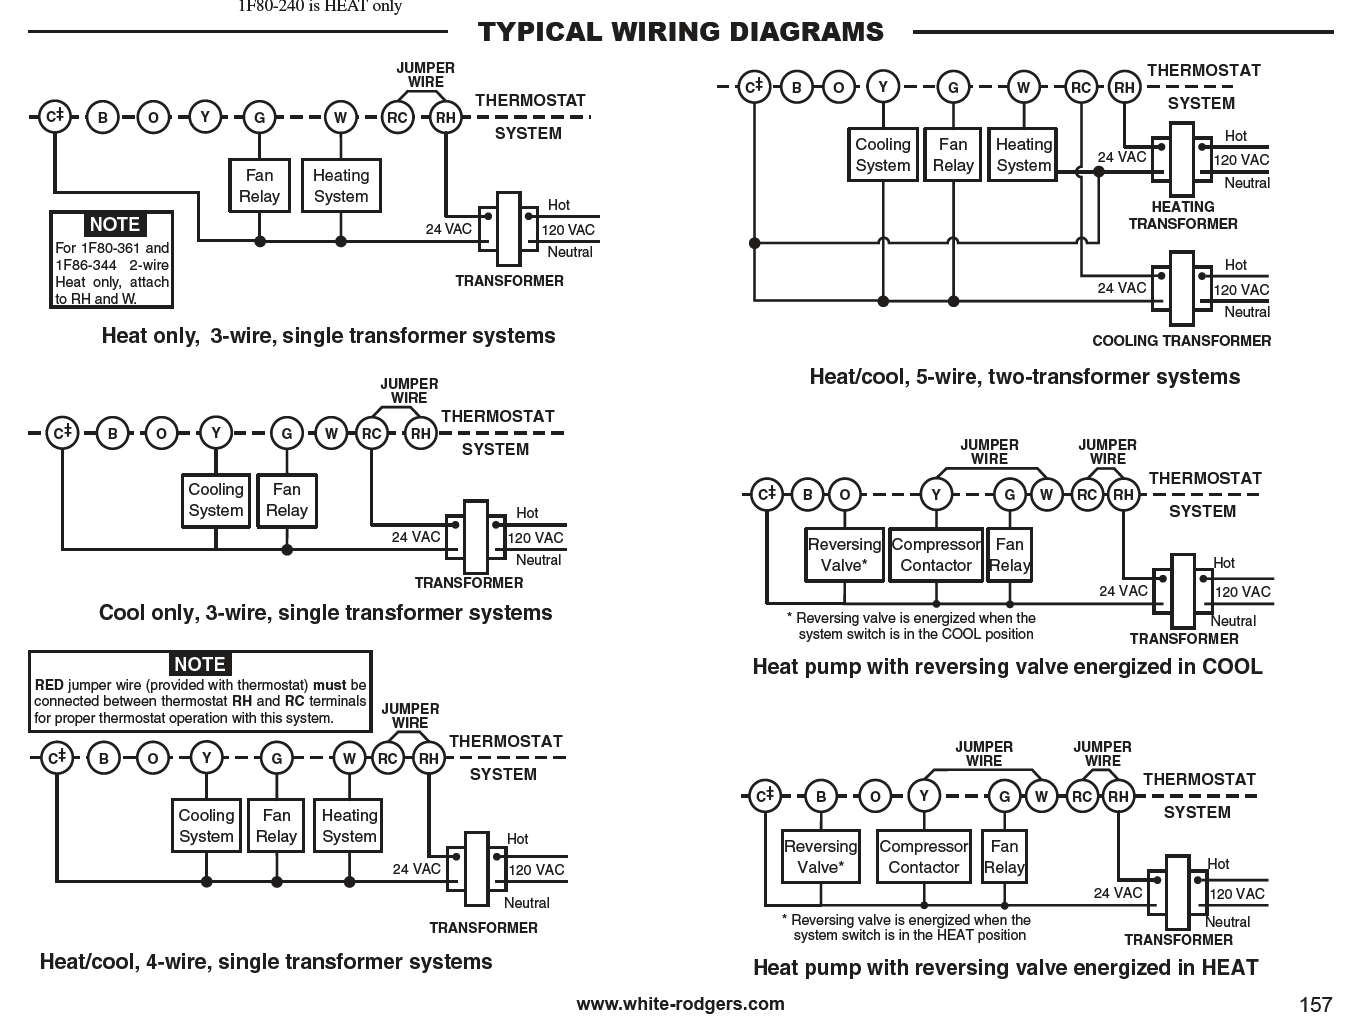 White Rodgers Thermostat Wiring Diagram 1f79